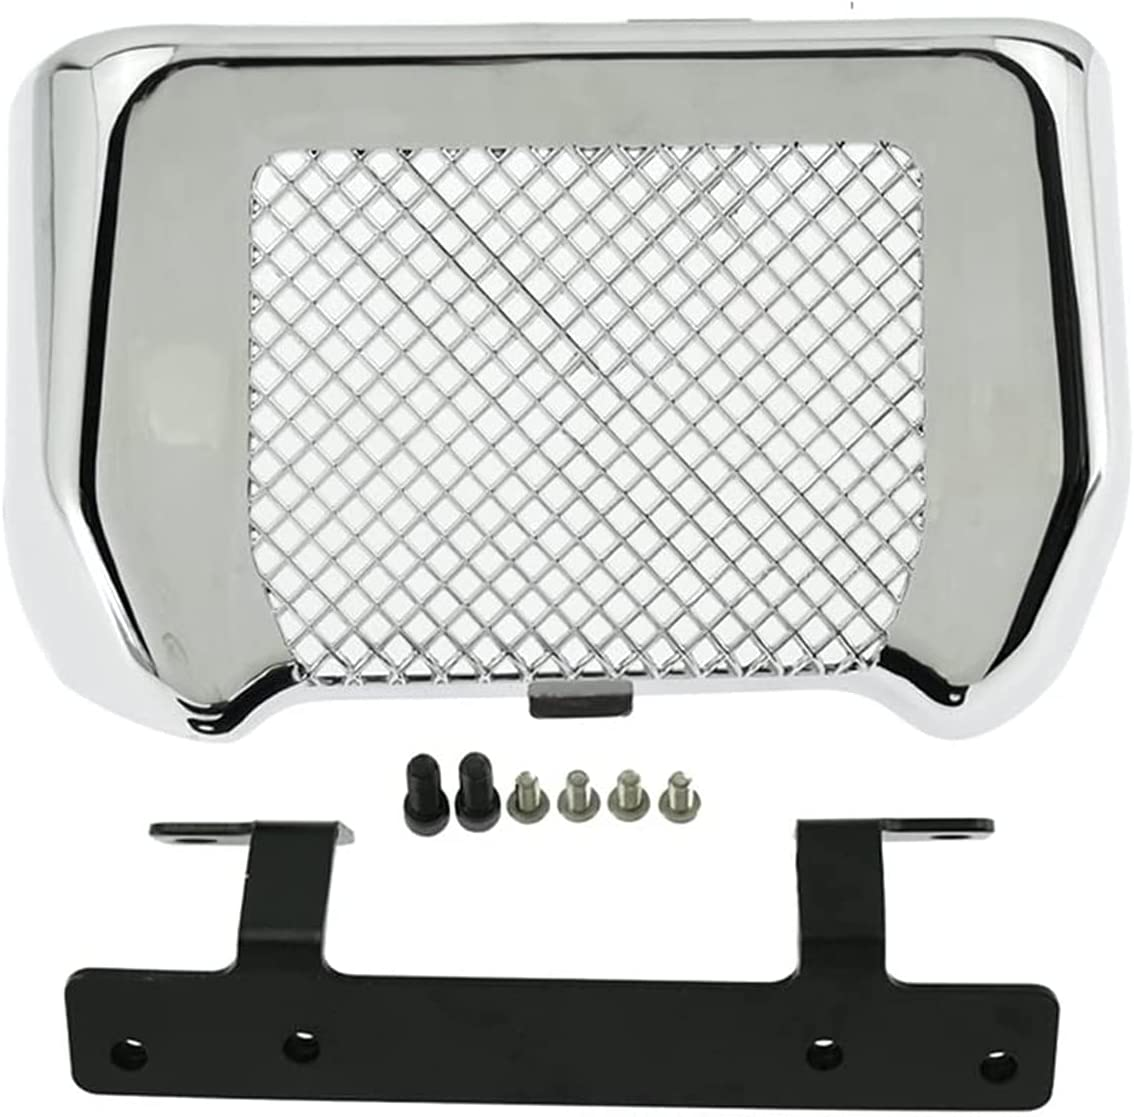 Motorcycle Oil Cooler Cover Case with Fit for Max Excellence 88% OFF Bracket Tou Harley